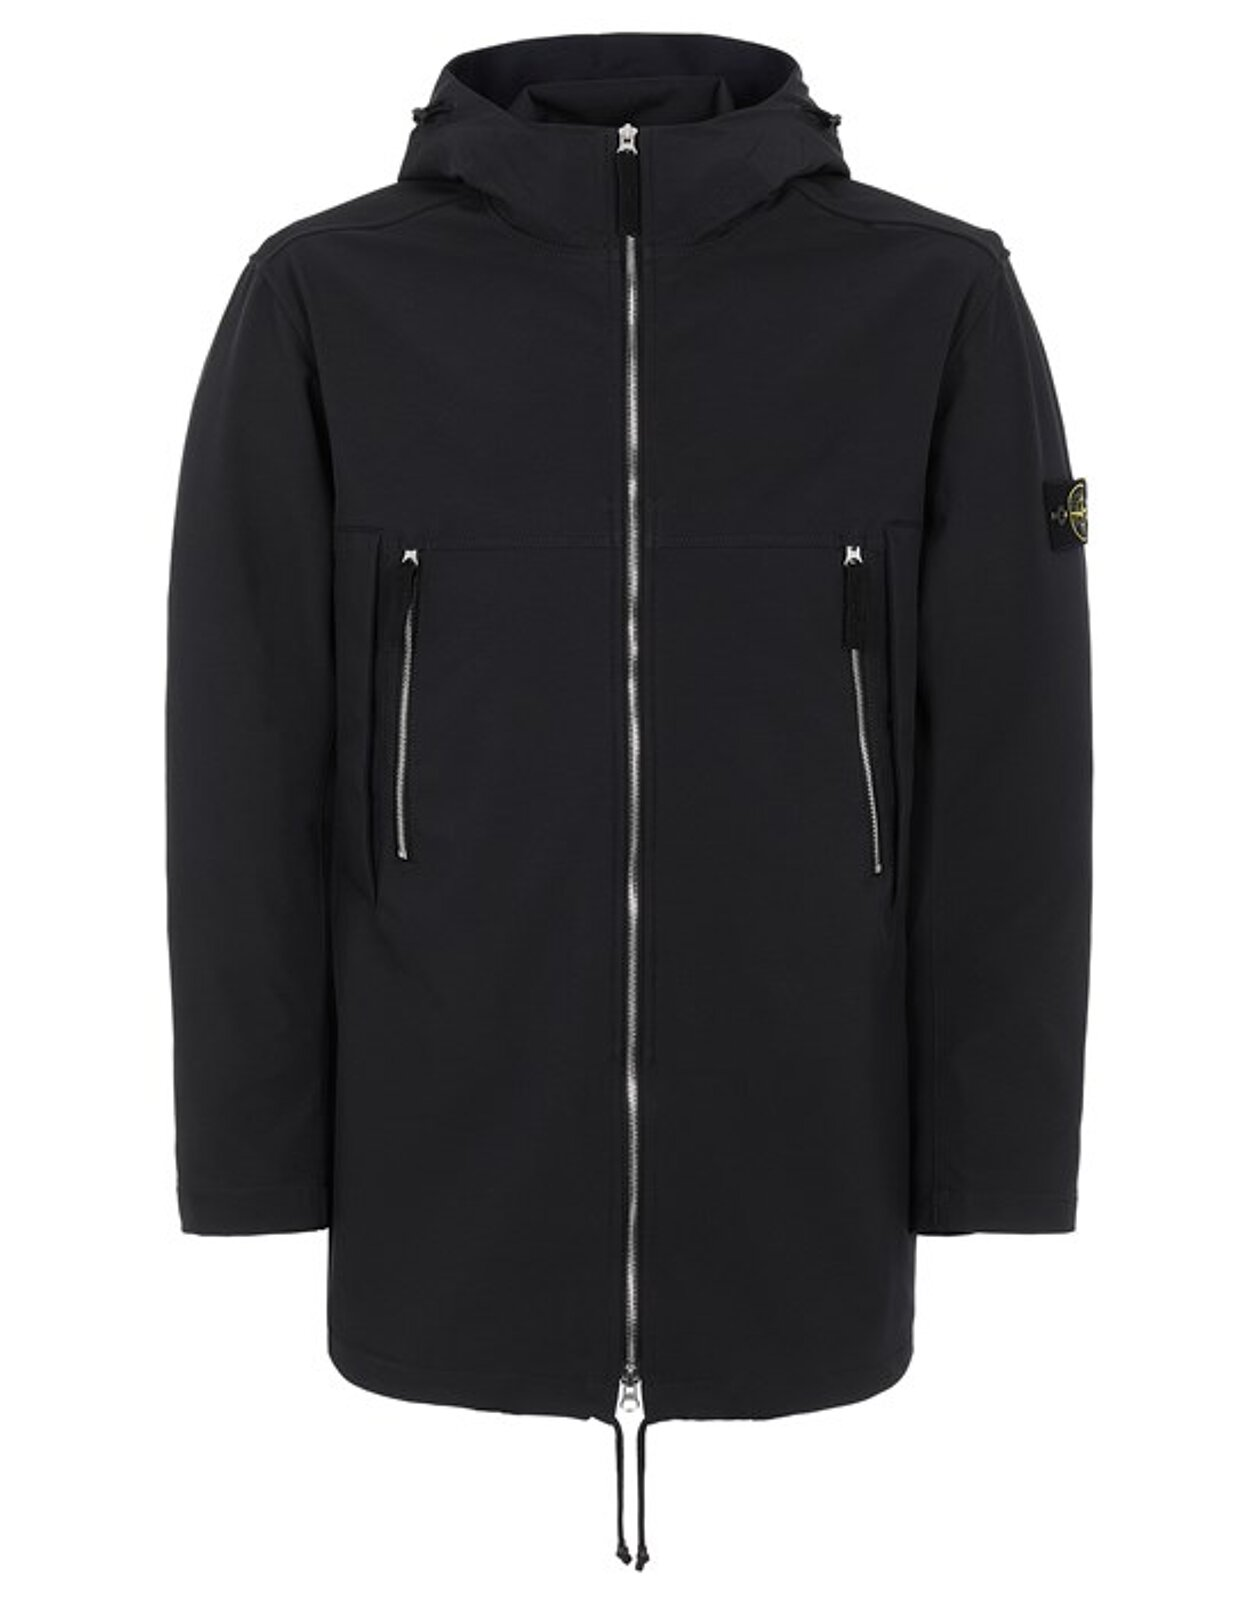 40627 Light Soft Shell-R E.Dye® Technology - Stone Island